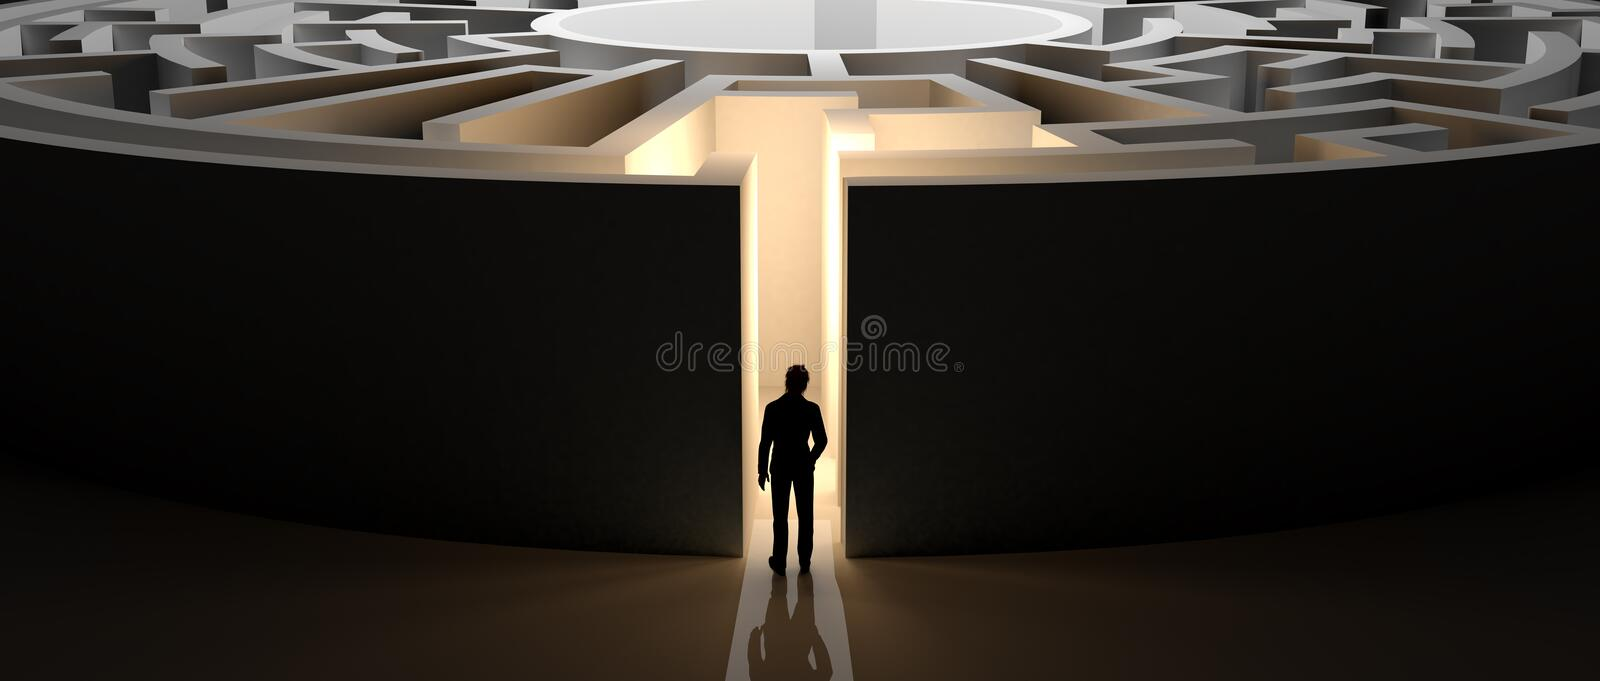 Businessman in front of a maze. Man facing a large round maze with high walls stock illustration